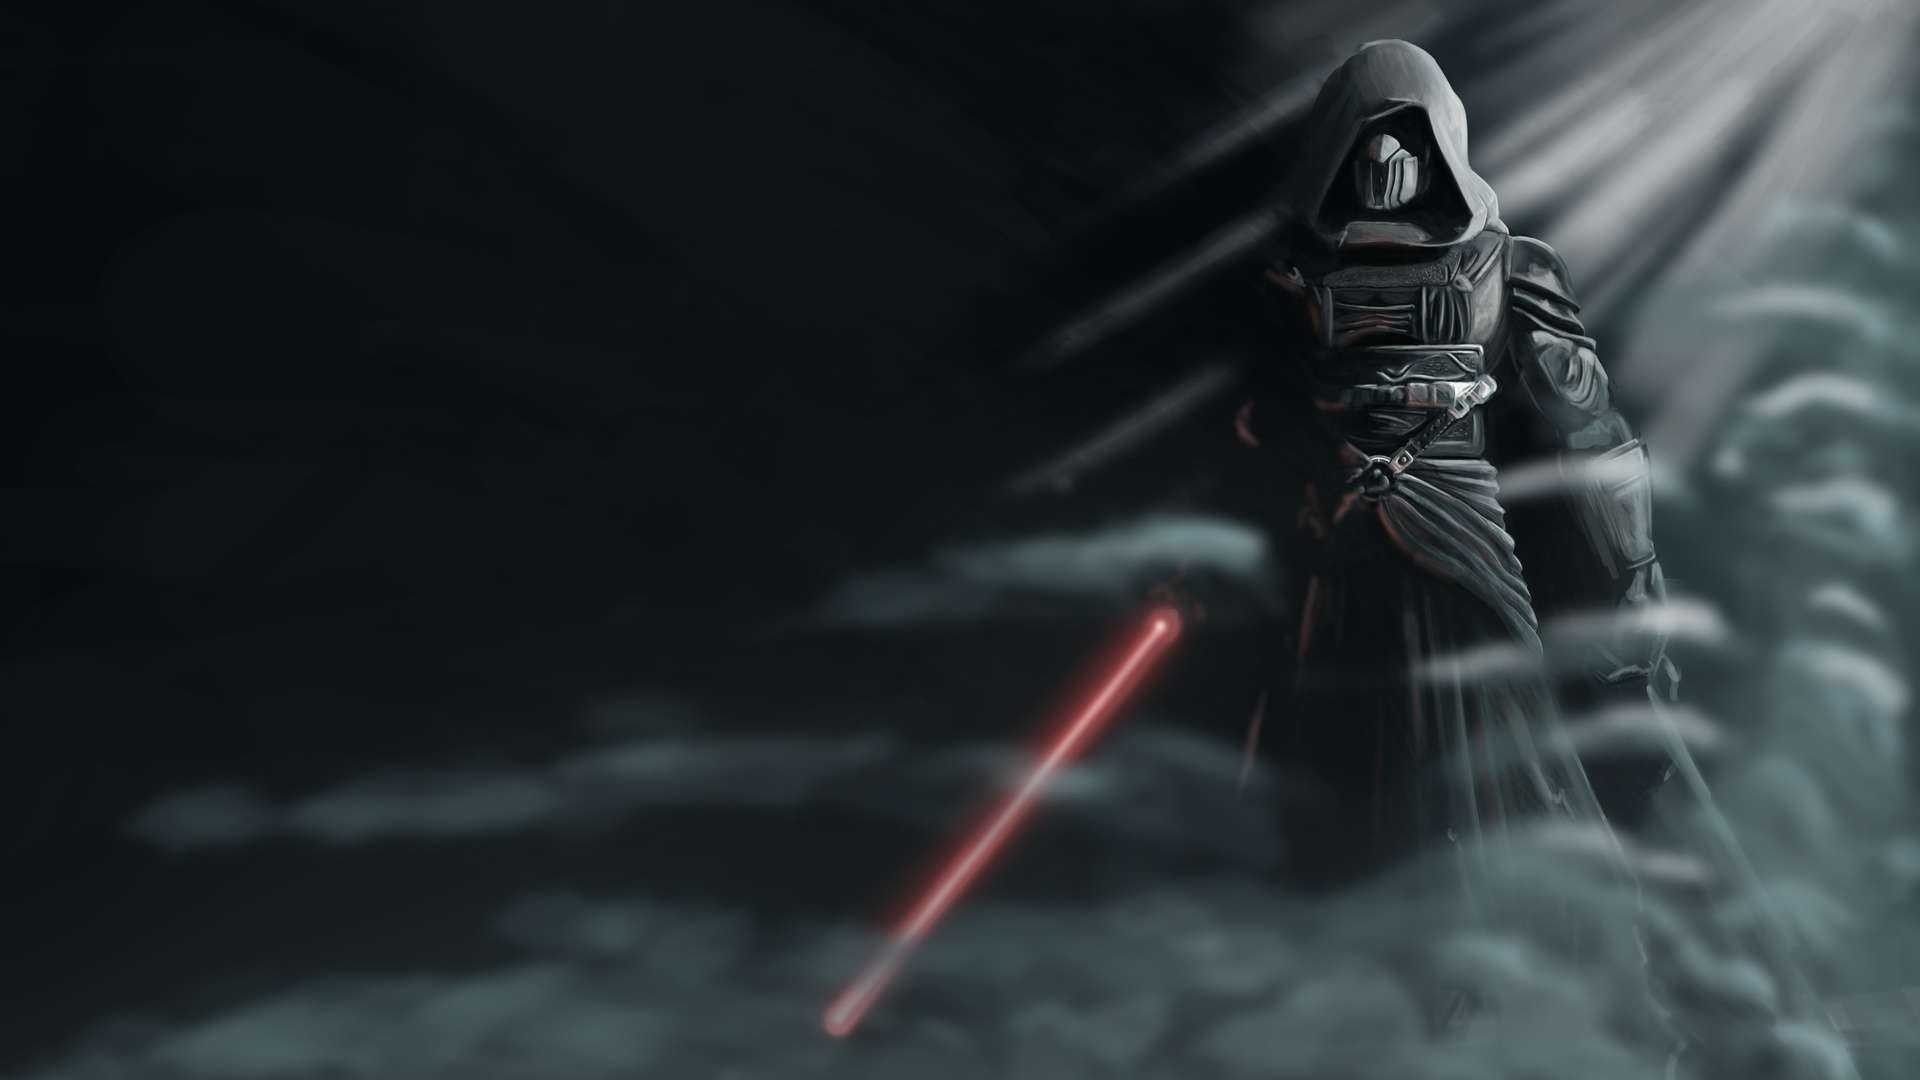 Res: 1920x1080, Star Wars Sith Full Hd As Wallpaper High Resolution Of Pc